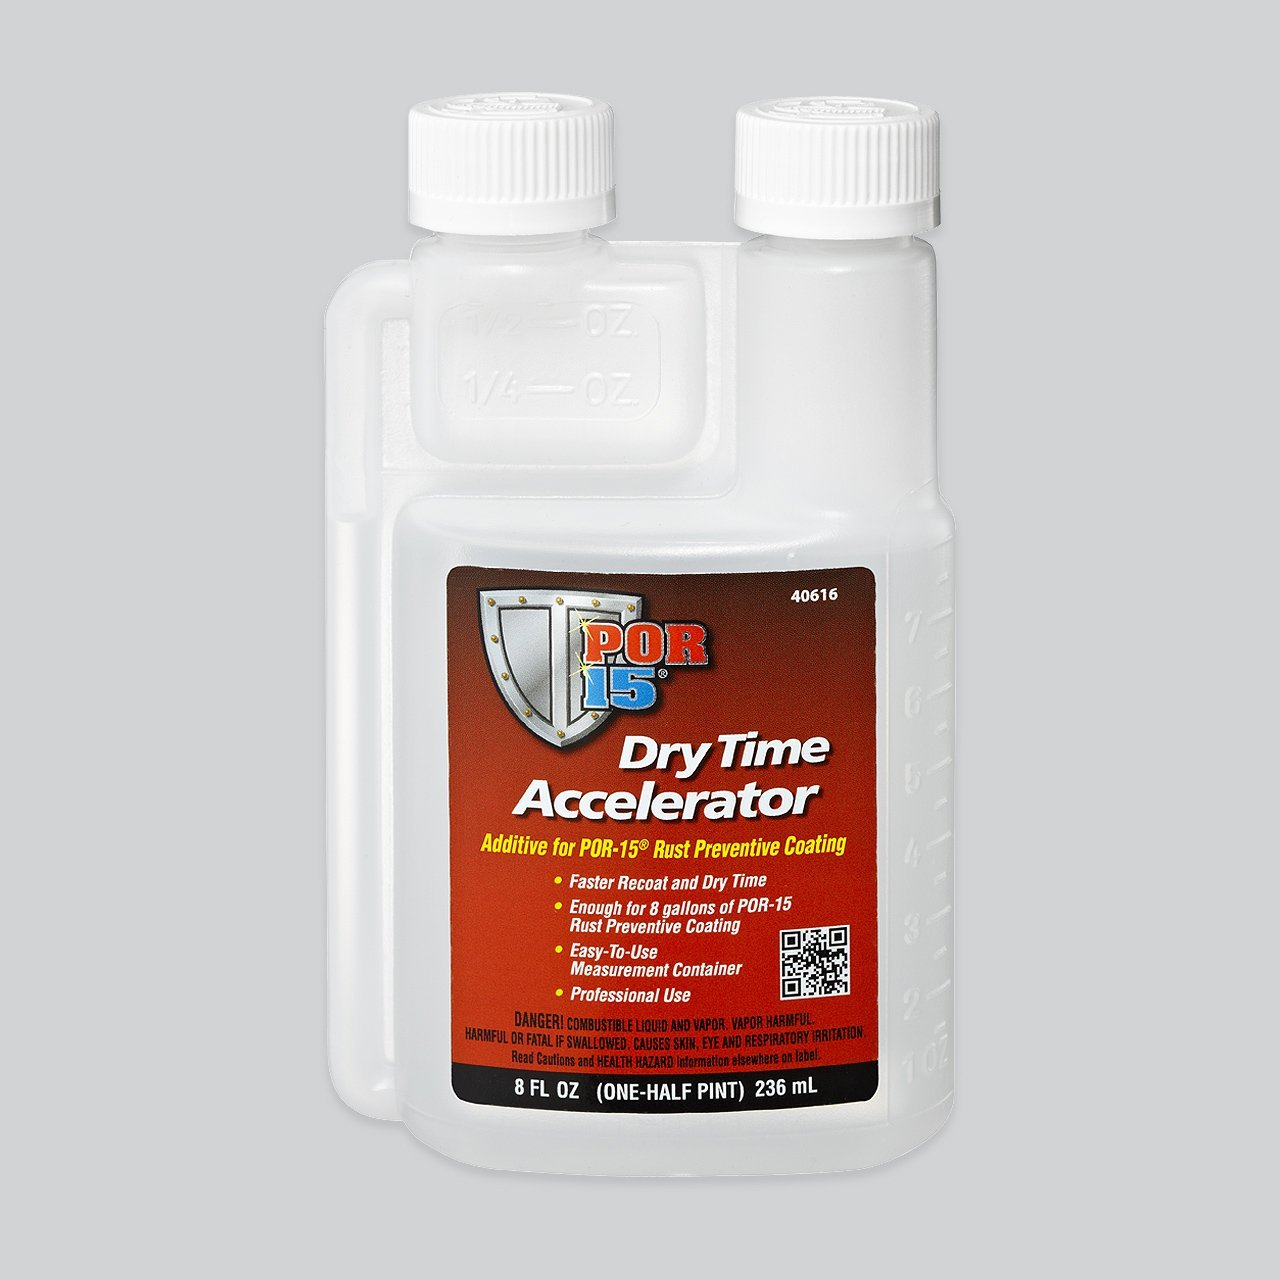 Dry Time Accelerator